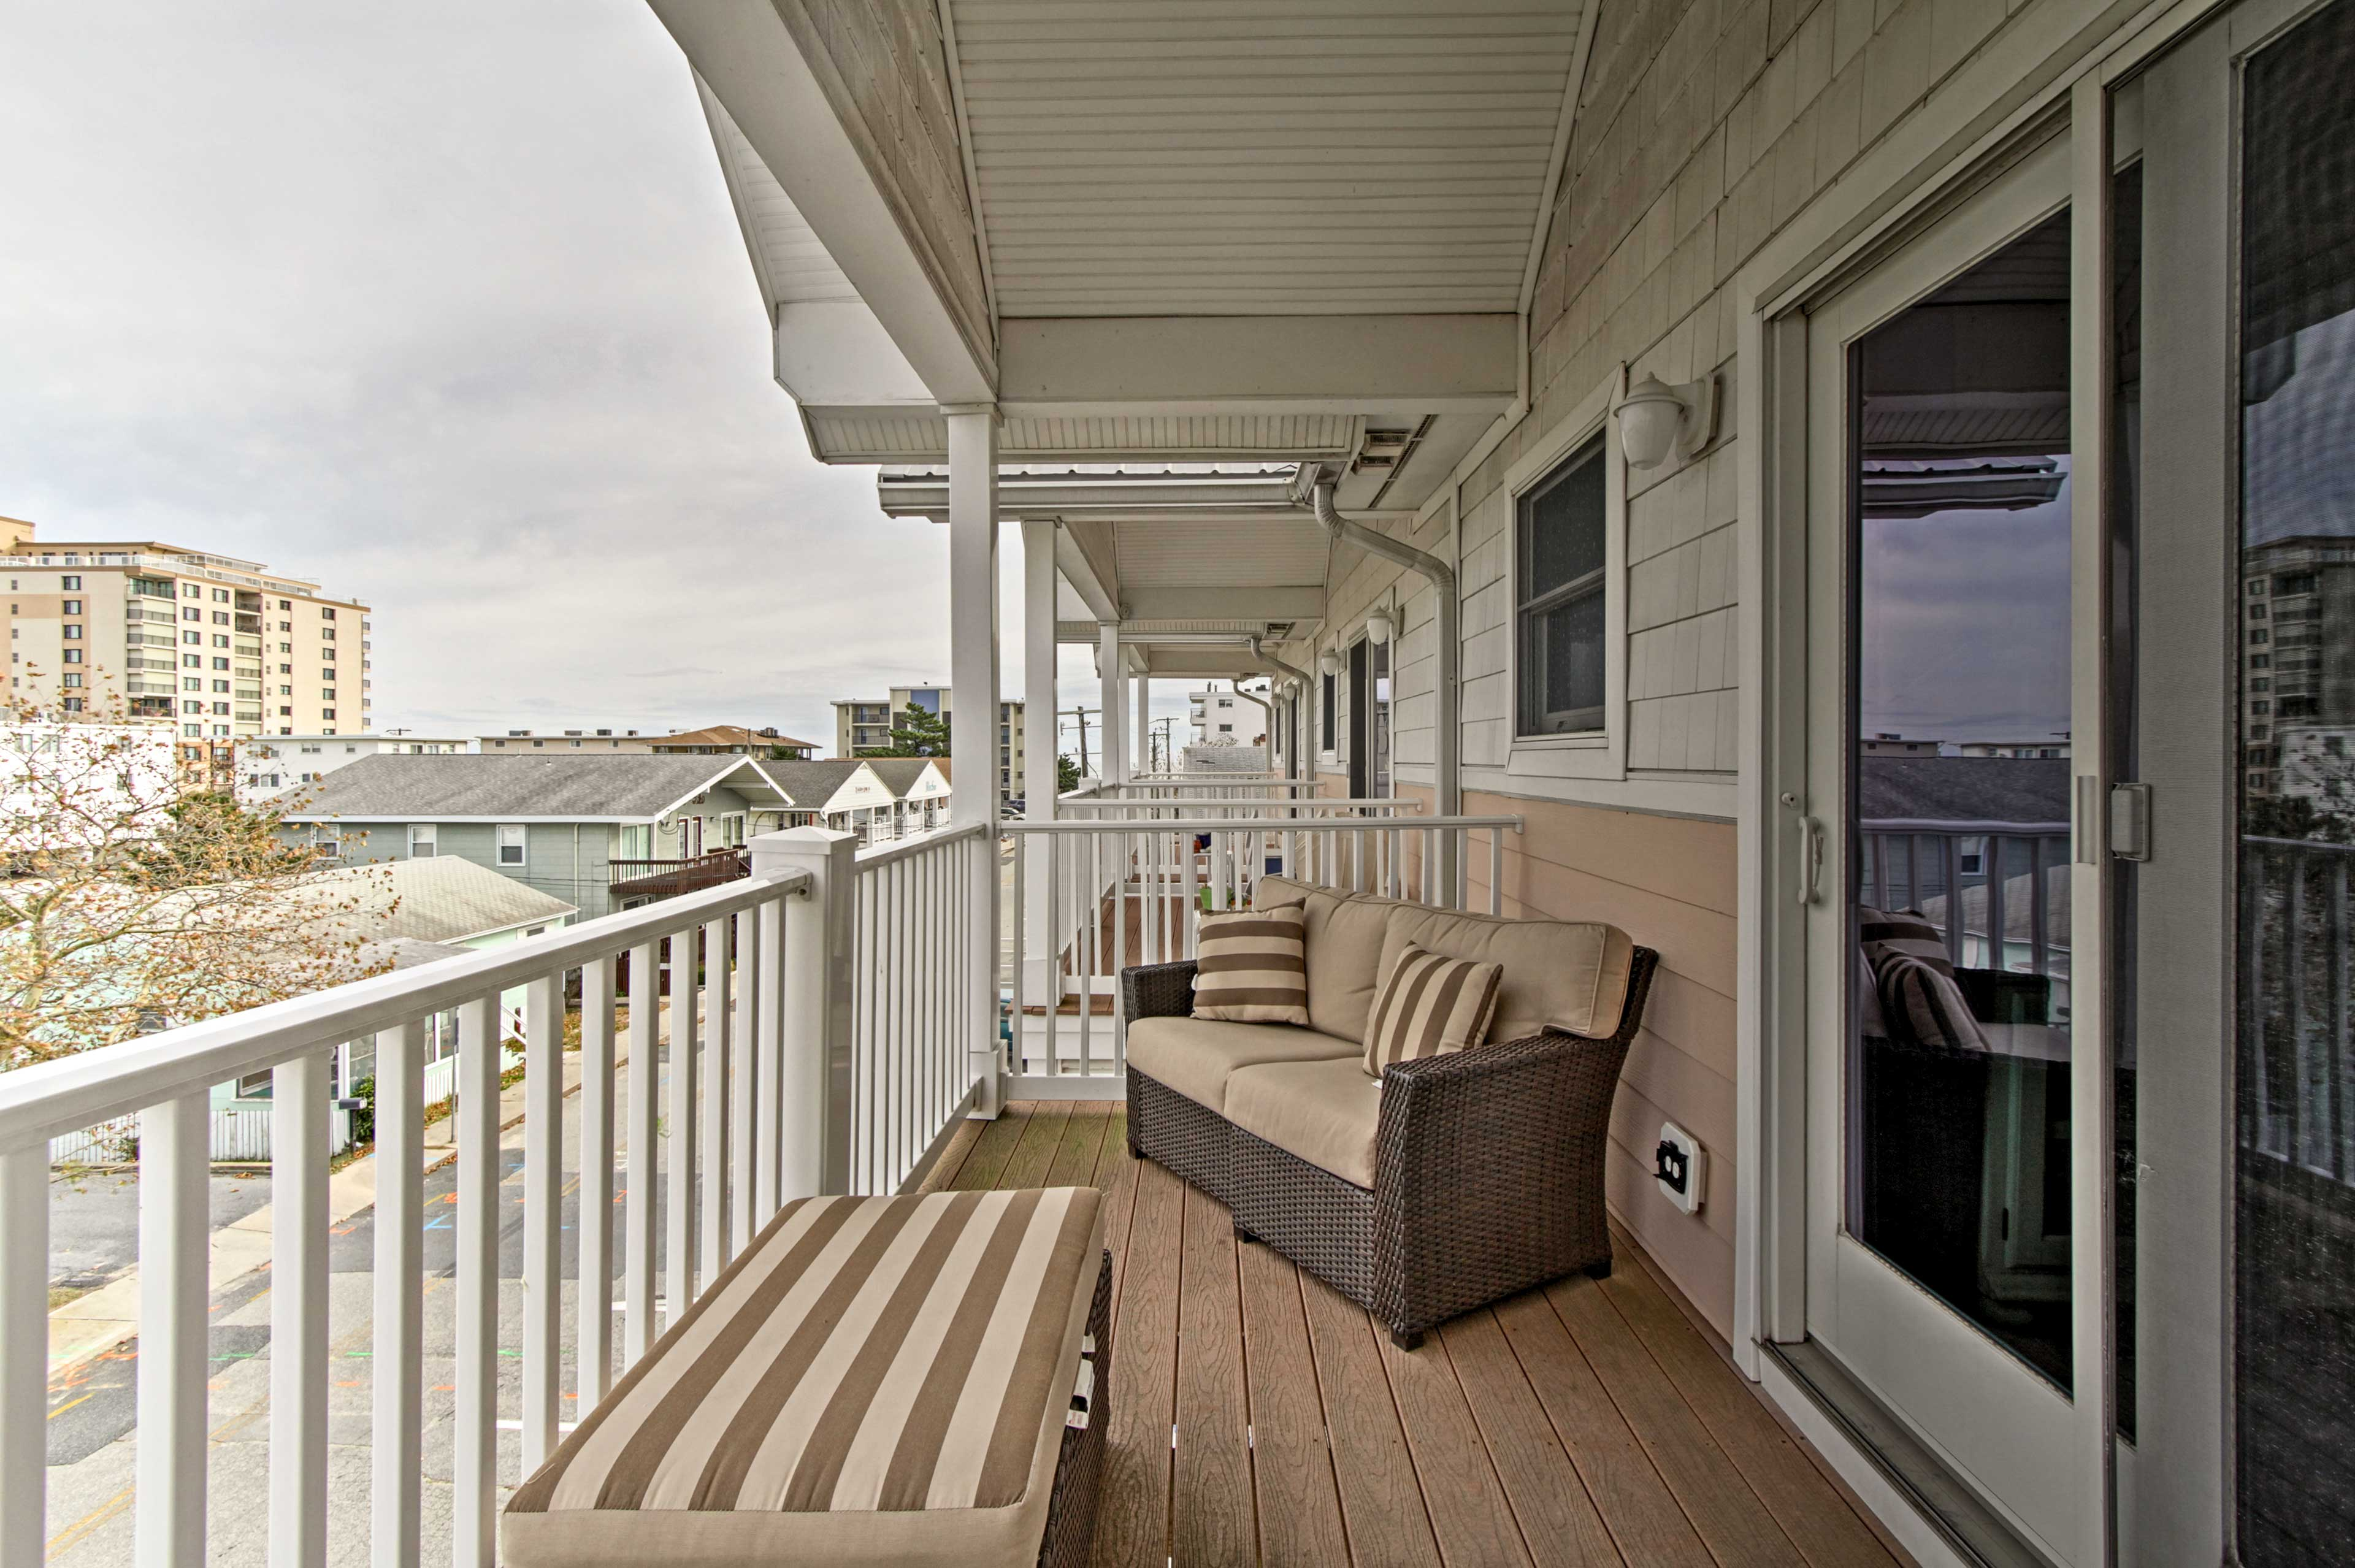 Three private balconies provide plenty of outdoor space.